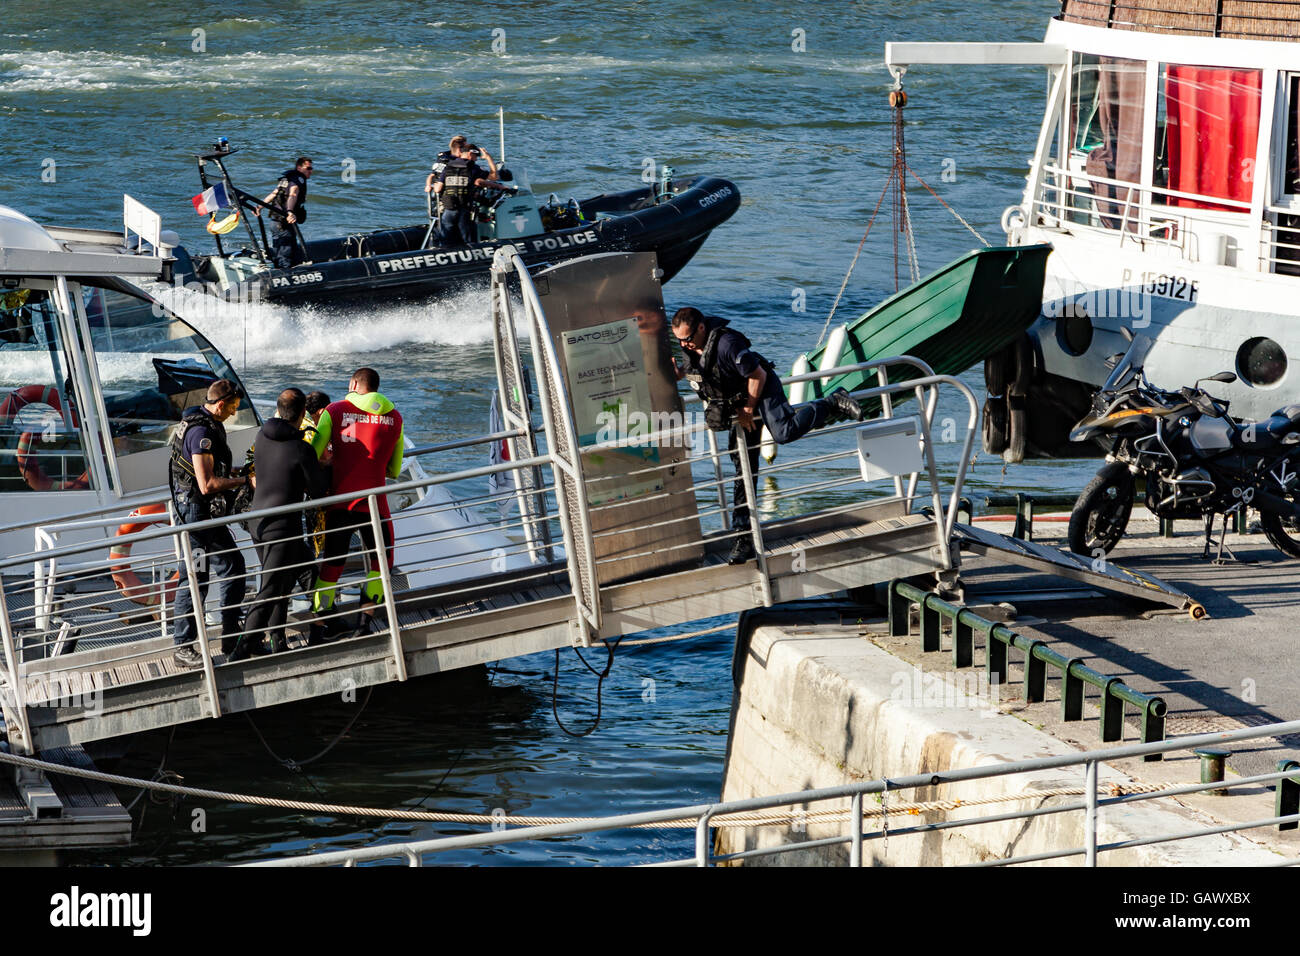 Paris, France. 5th July, 2016. A man is being evacuated from Seine river by fireman and policemen. Credit:  Guillaume - Stock Image